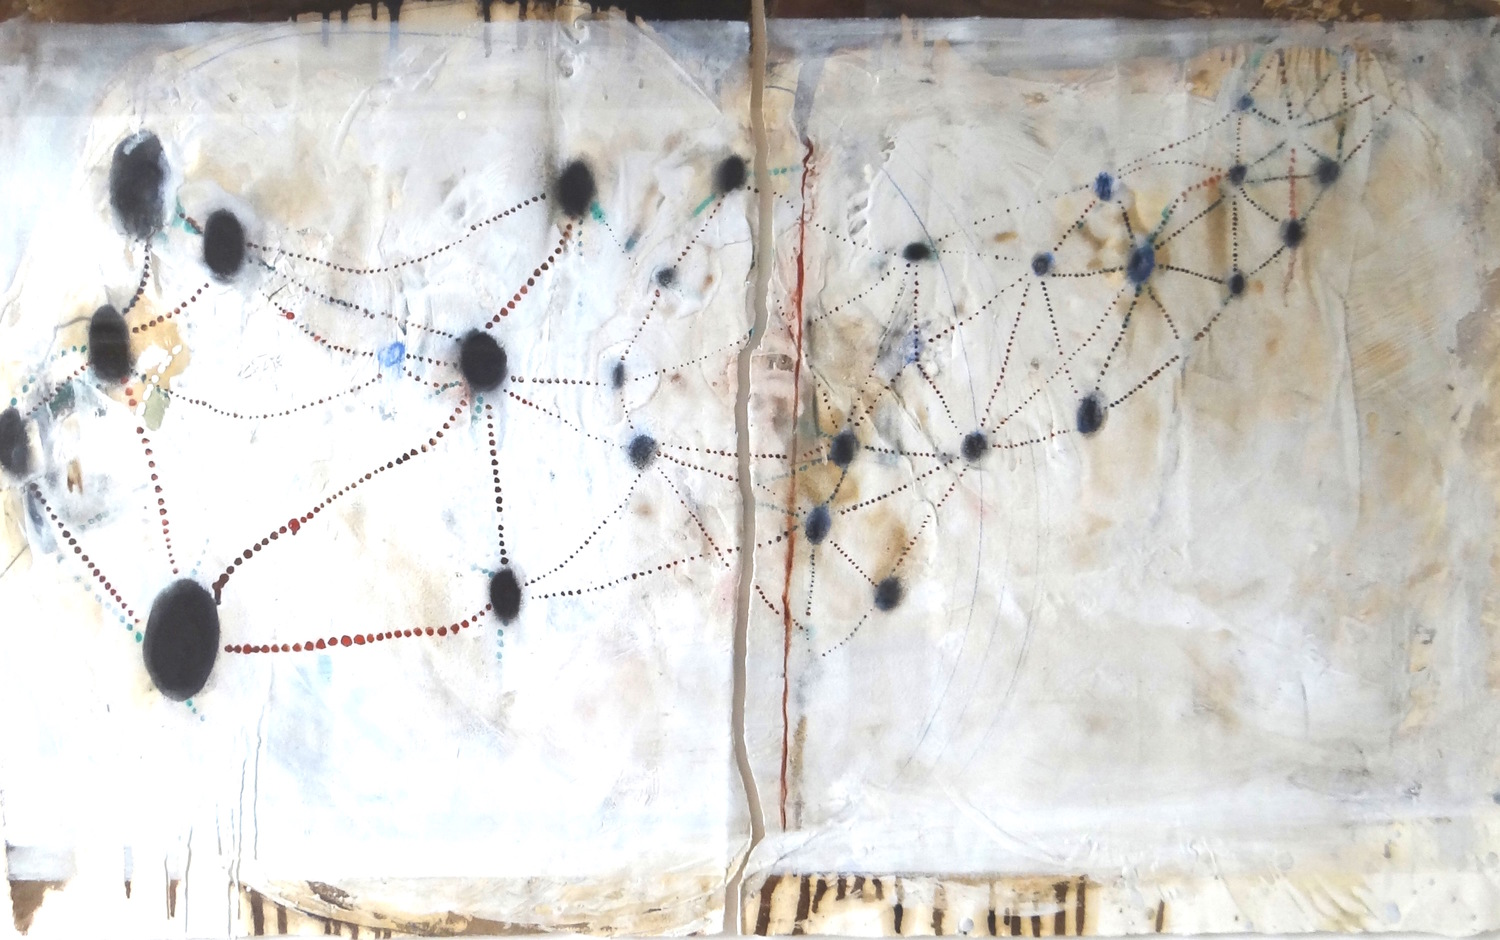 Constellation - Mixed media. Lauren Mantecon